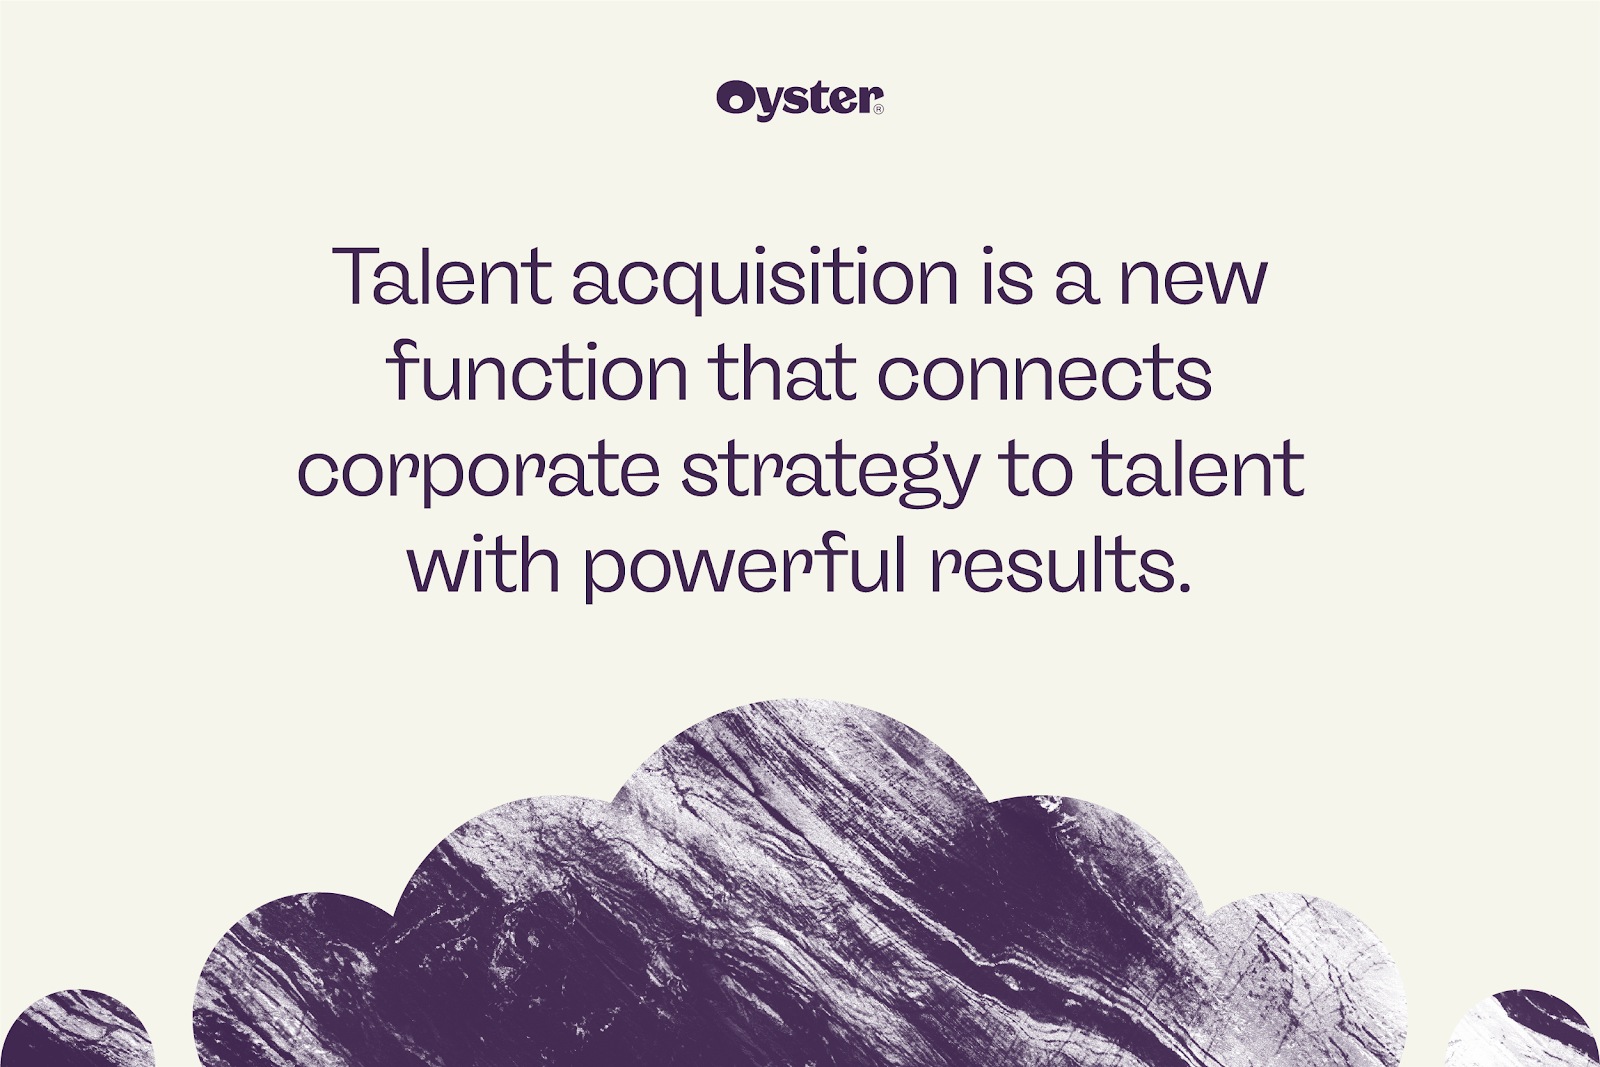 Talent acquisition is a new function that connects corporate strategy to talent with powerful results.